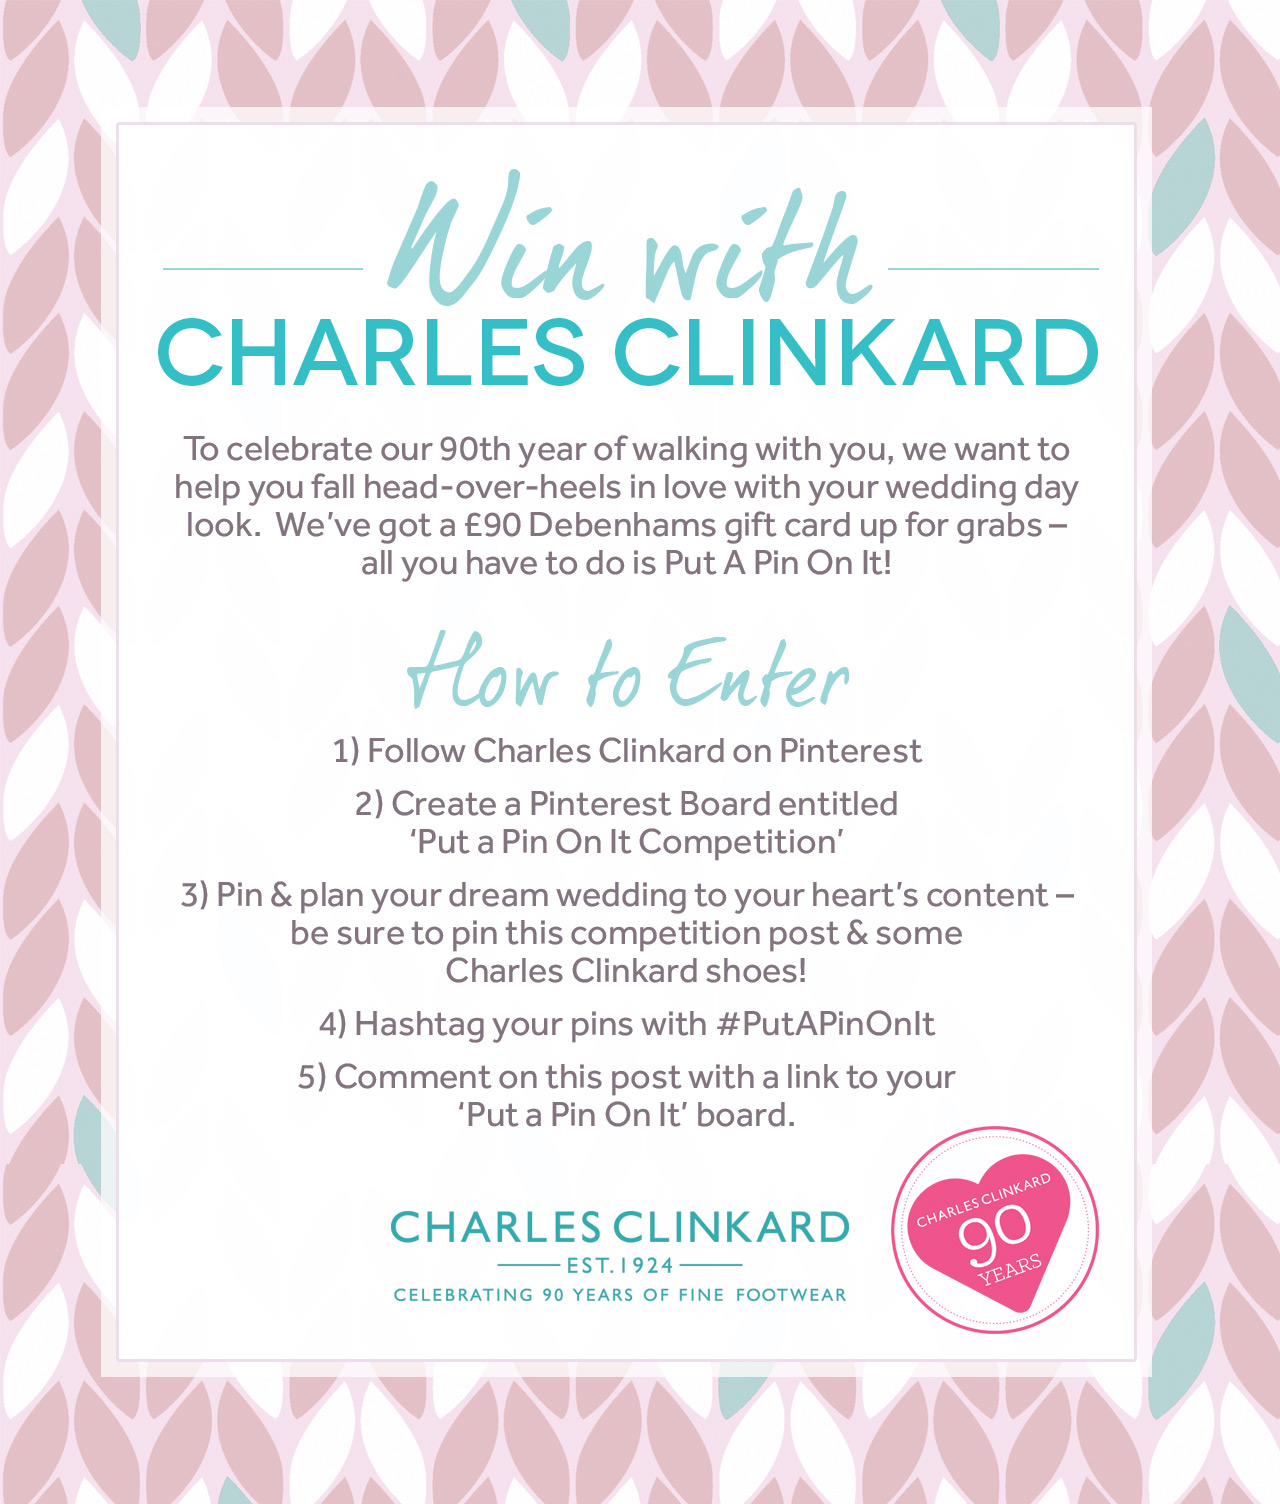 Put A Pin On It Competition | Charles Clinkard | Home › Blog